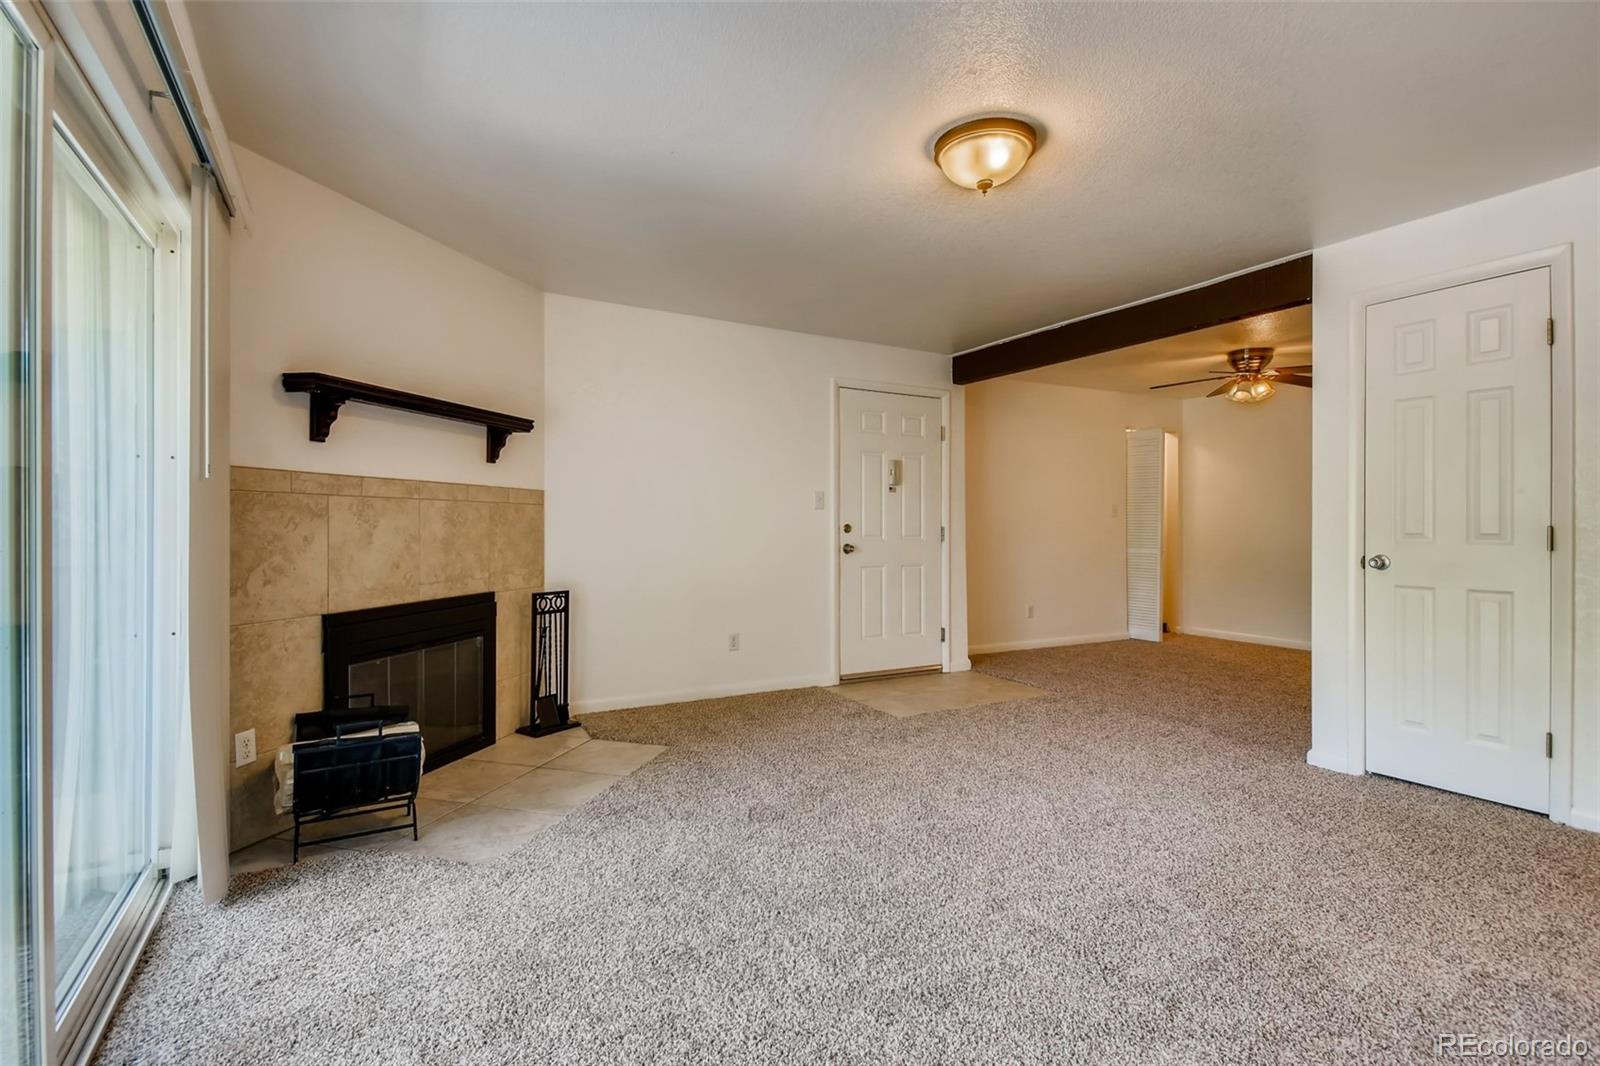 MLS# 4354857 - 7 - 12100 Melody Drive #301, Westminster, CO 80234